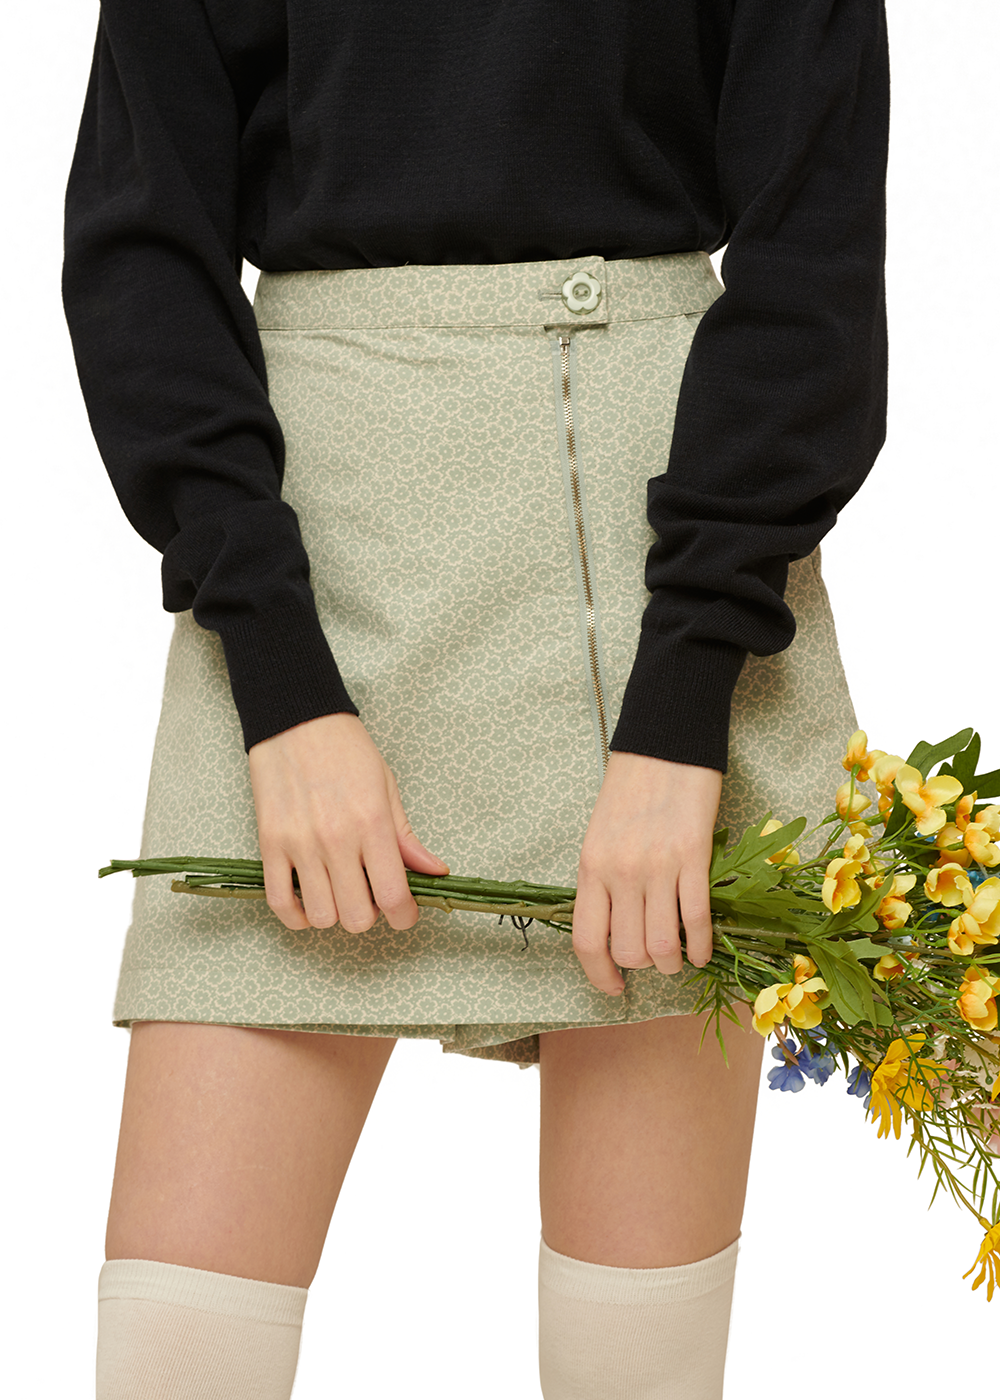 Flower Zipper Skirt pants [MINT]Flower Zipper Skirt pants [MINT]자체브랜드